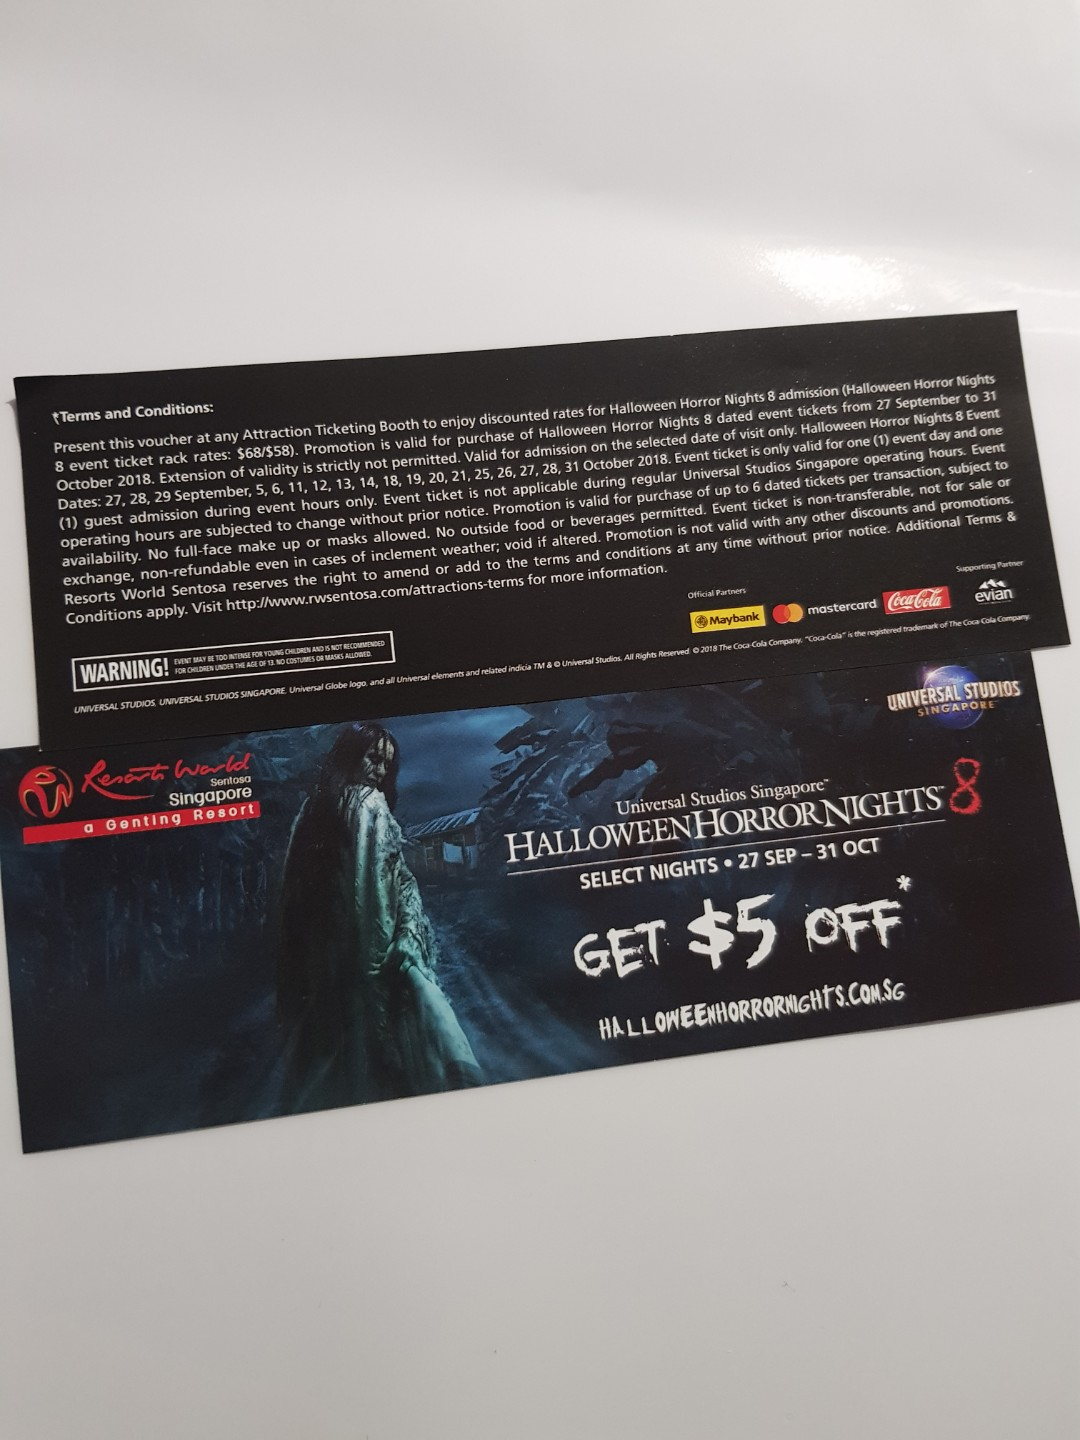 Halloween Horror Nights 8 5 Off Voucher Entertainment Gift Cards Singapore Duck Tour Vouchers On Carousell